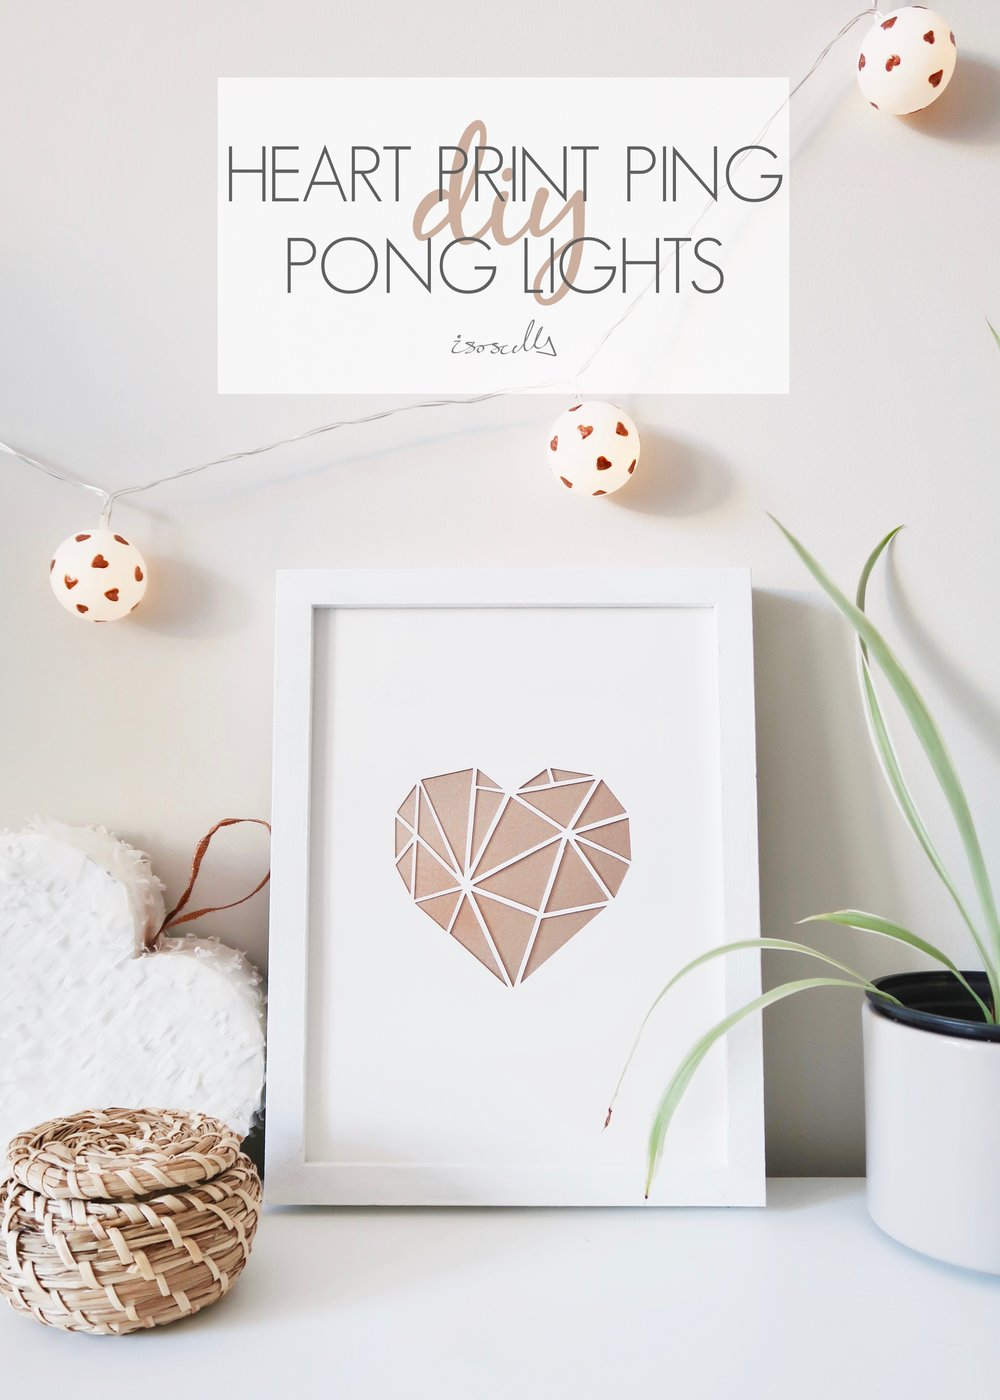 DIY Heart Print Ping Pong Lights by Isoscella